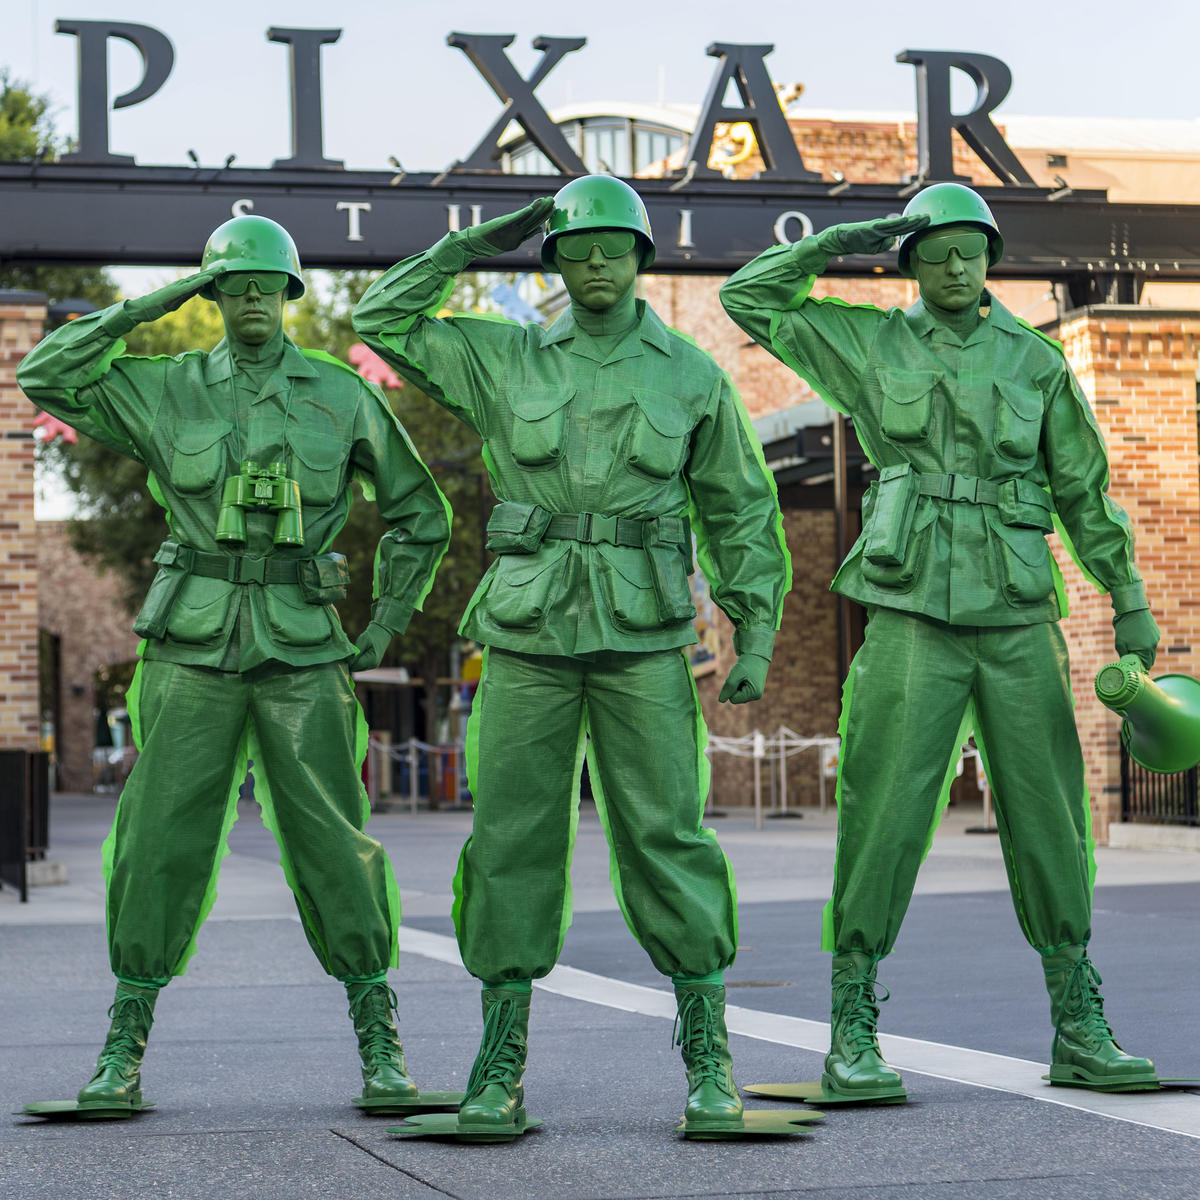 Andy's green army men Toy Story Land